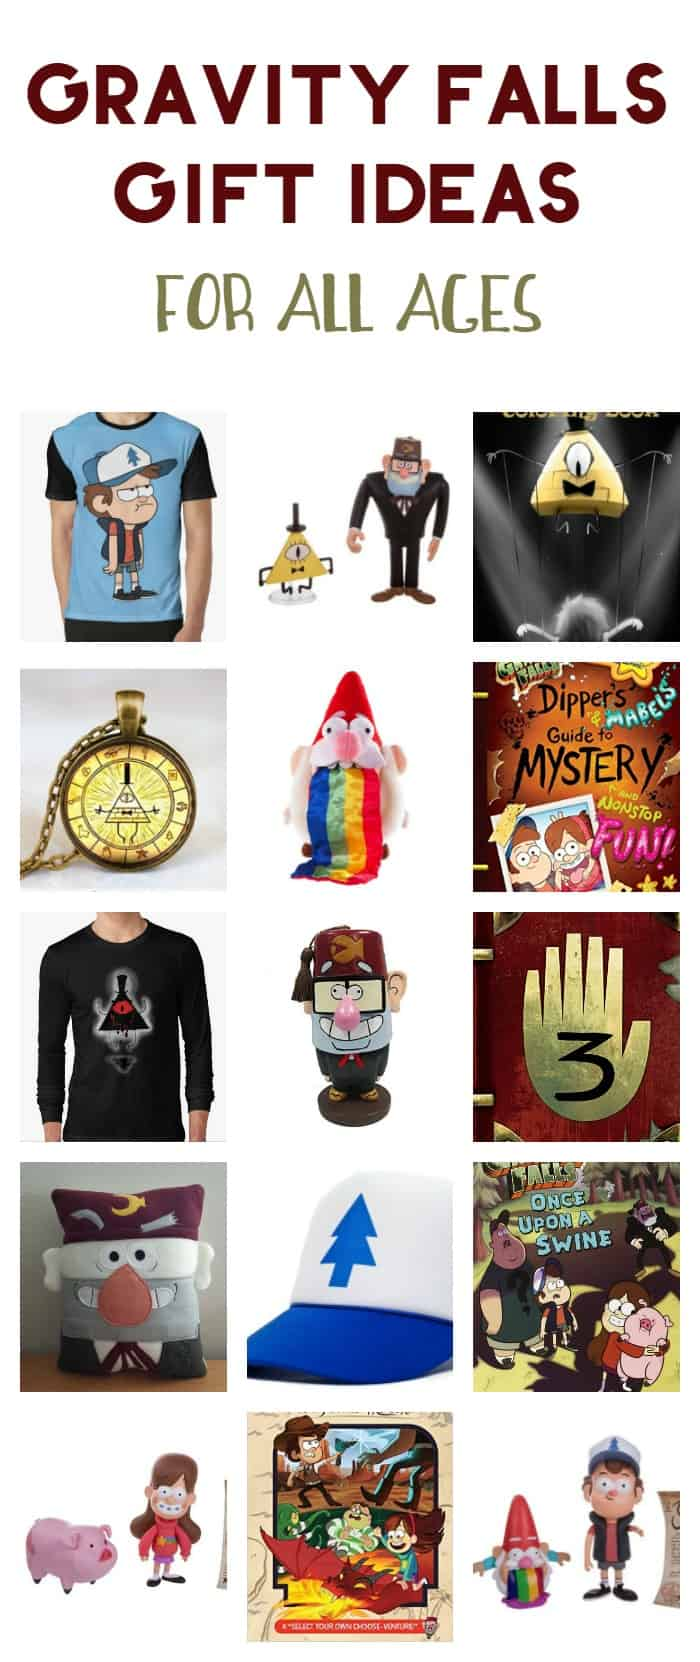 Got a kid as obsessed with Gravity Falls as mine is? Check out over 20 awesome Gravity Falls gift ideas for all ages!